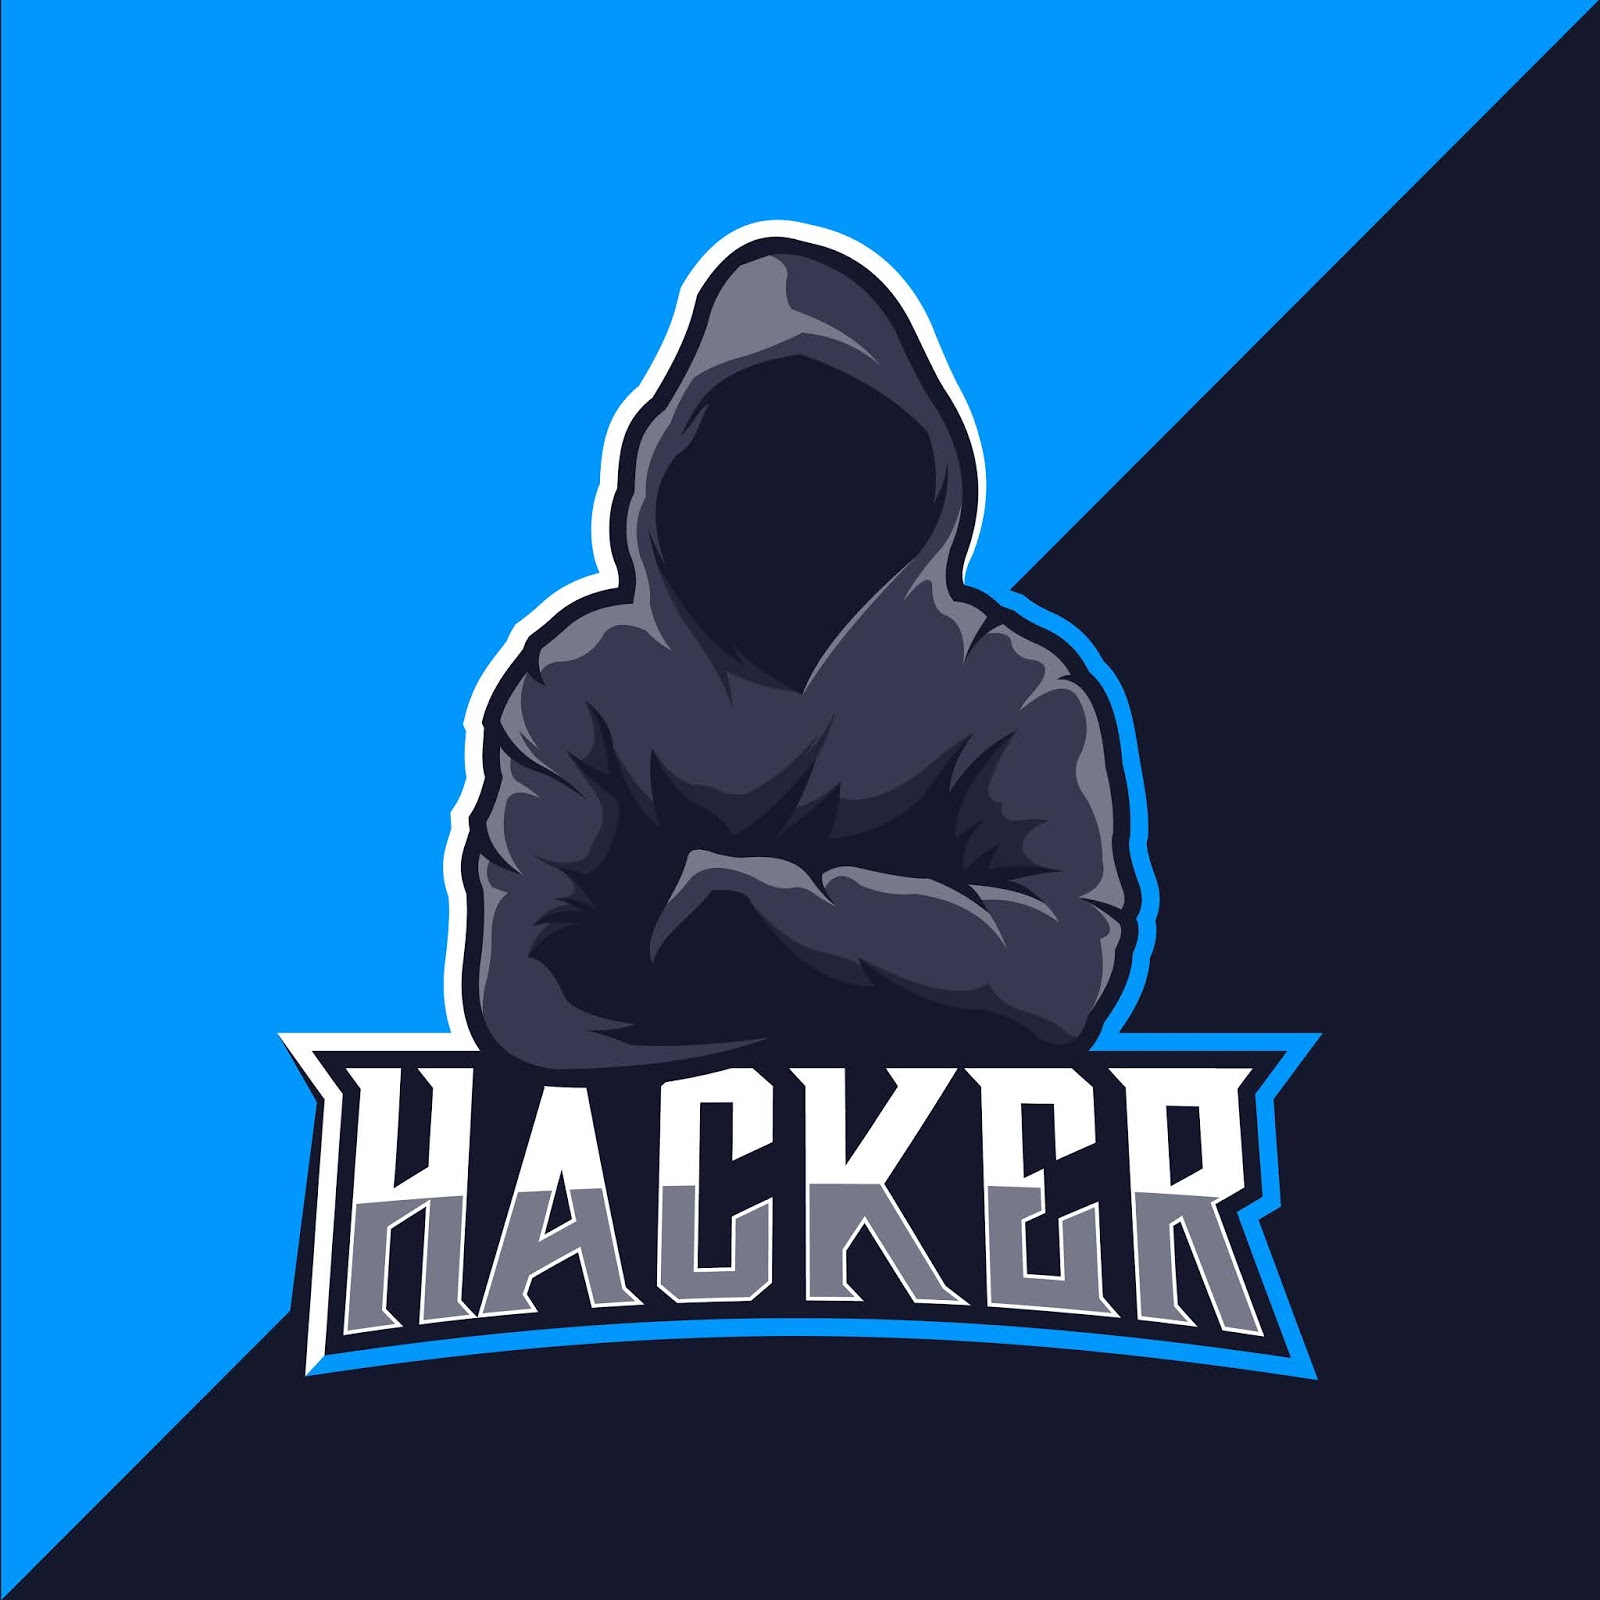 Hacker Logo Esport Free Download Vector CDR, AI, EPS and PNG Formats